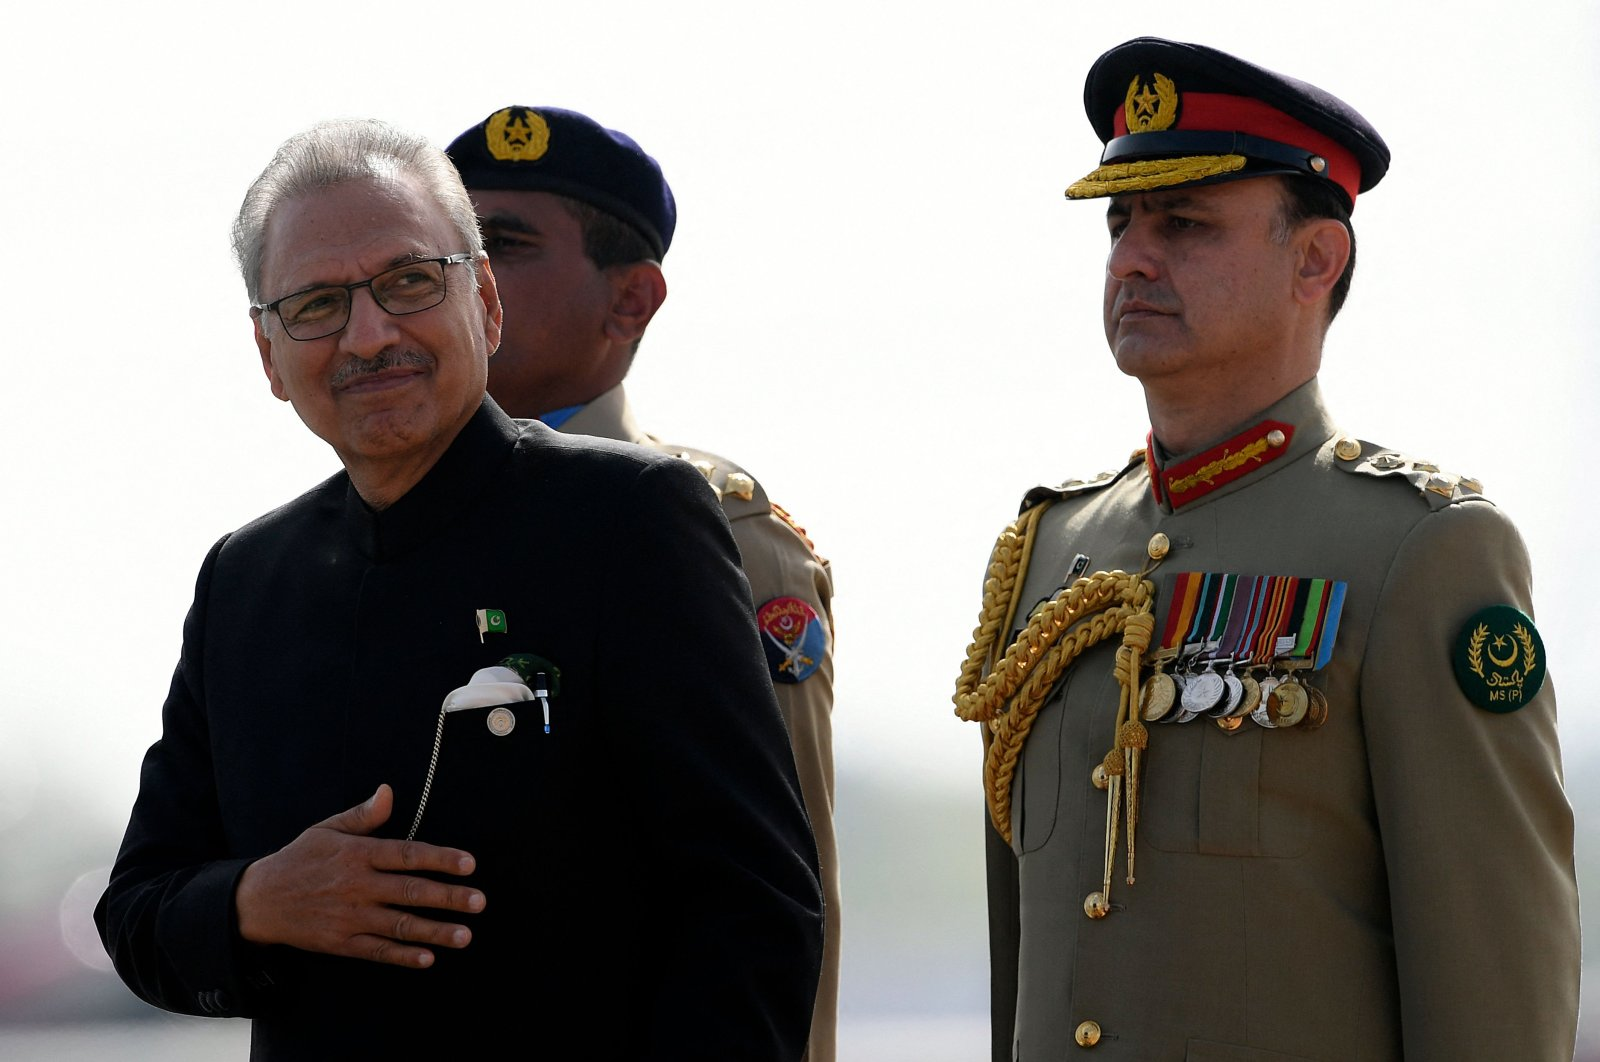 Pakistan's President Arif Alvi (L) inspects the guard of honor during a military parade to mark Pakistan's National Day in Islamabad, Pakistan, March 25, 2021. (AFP Photo)